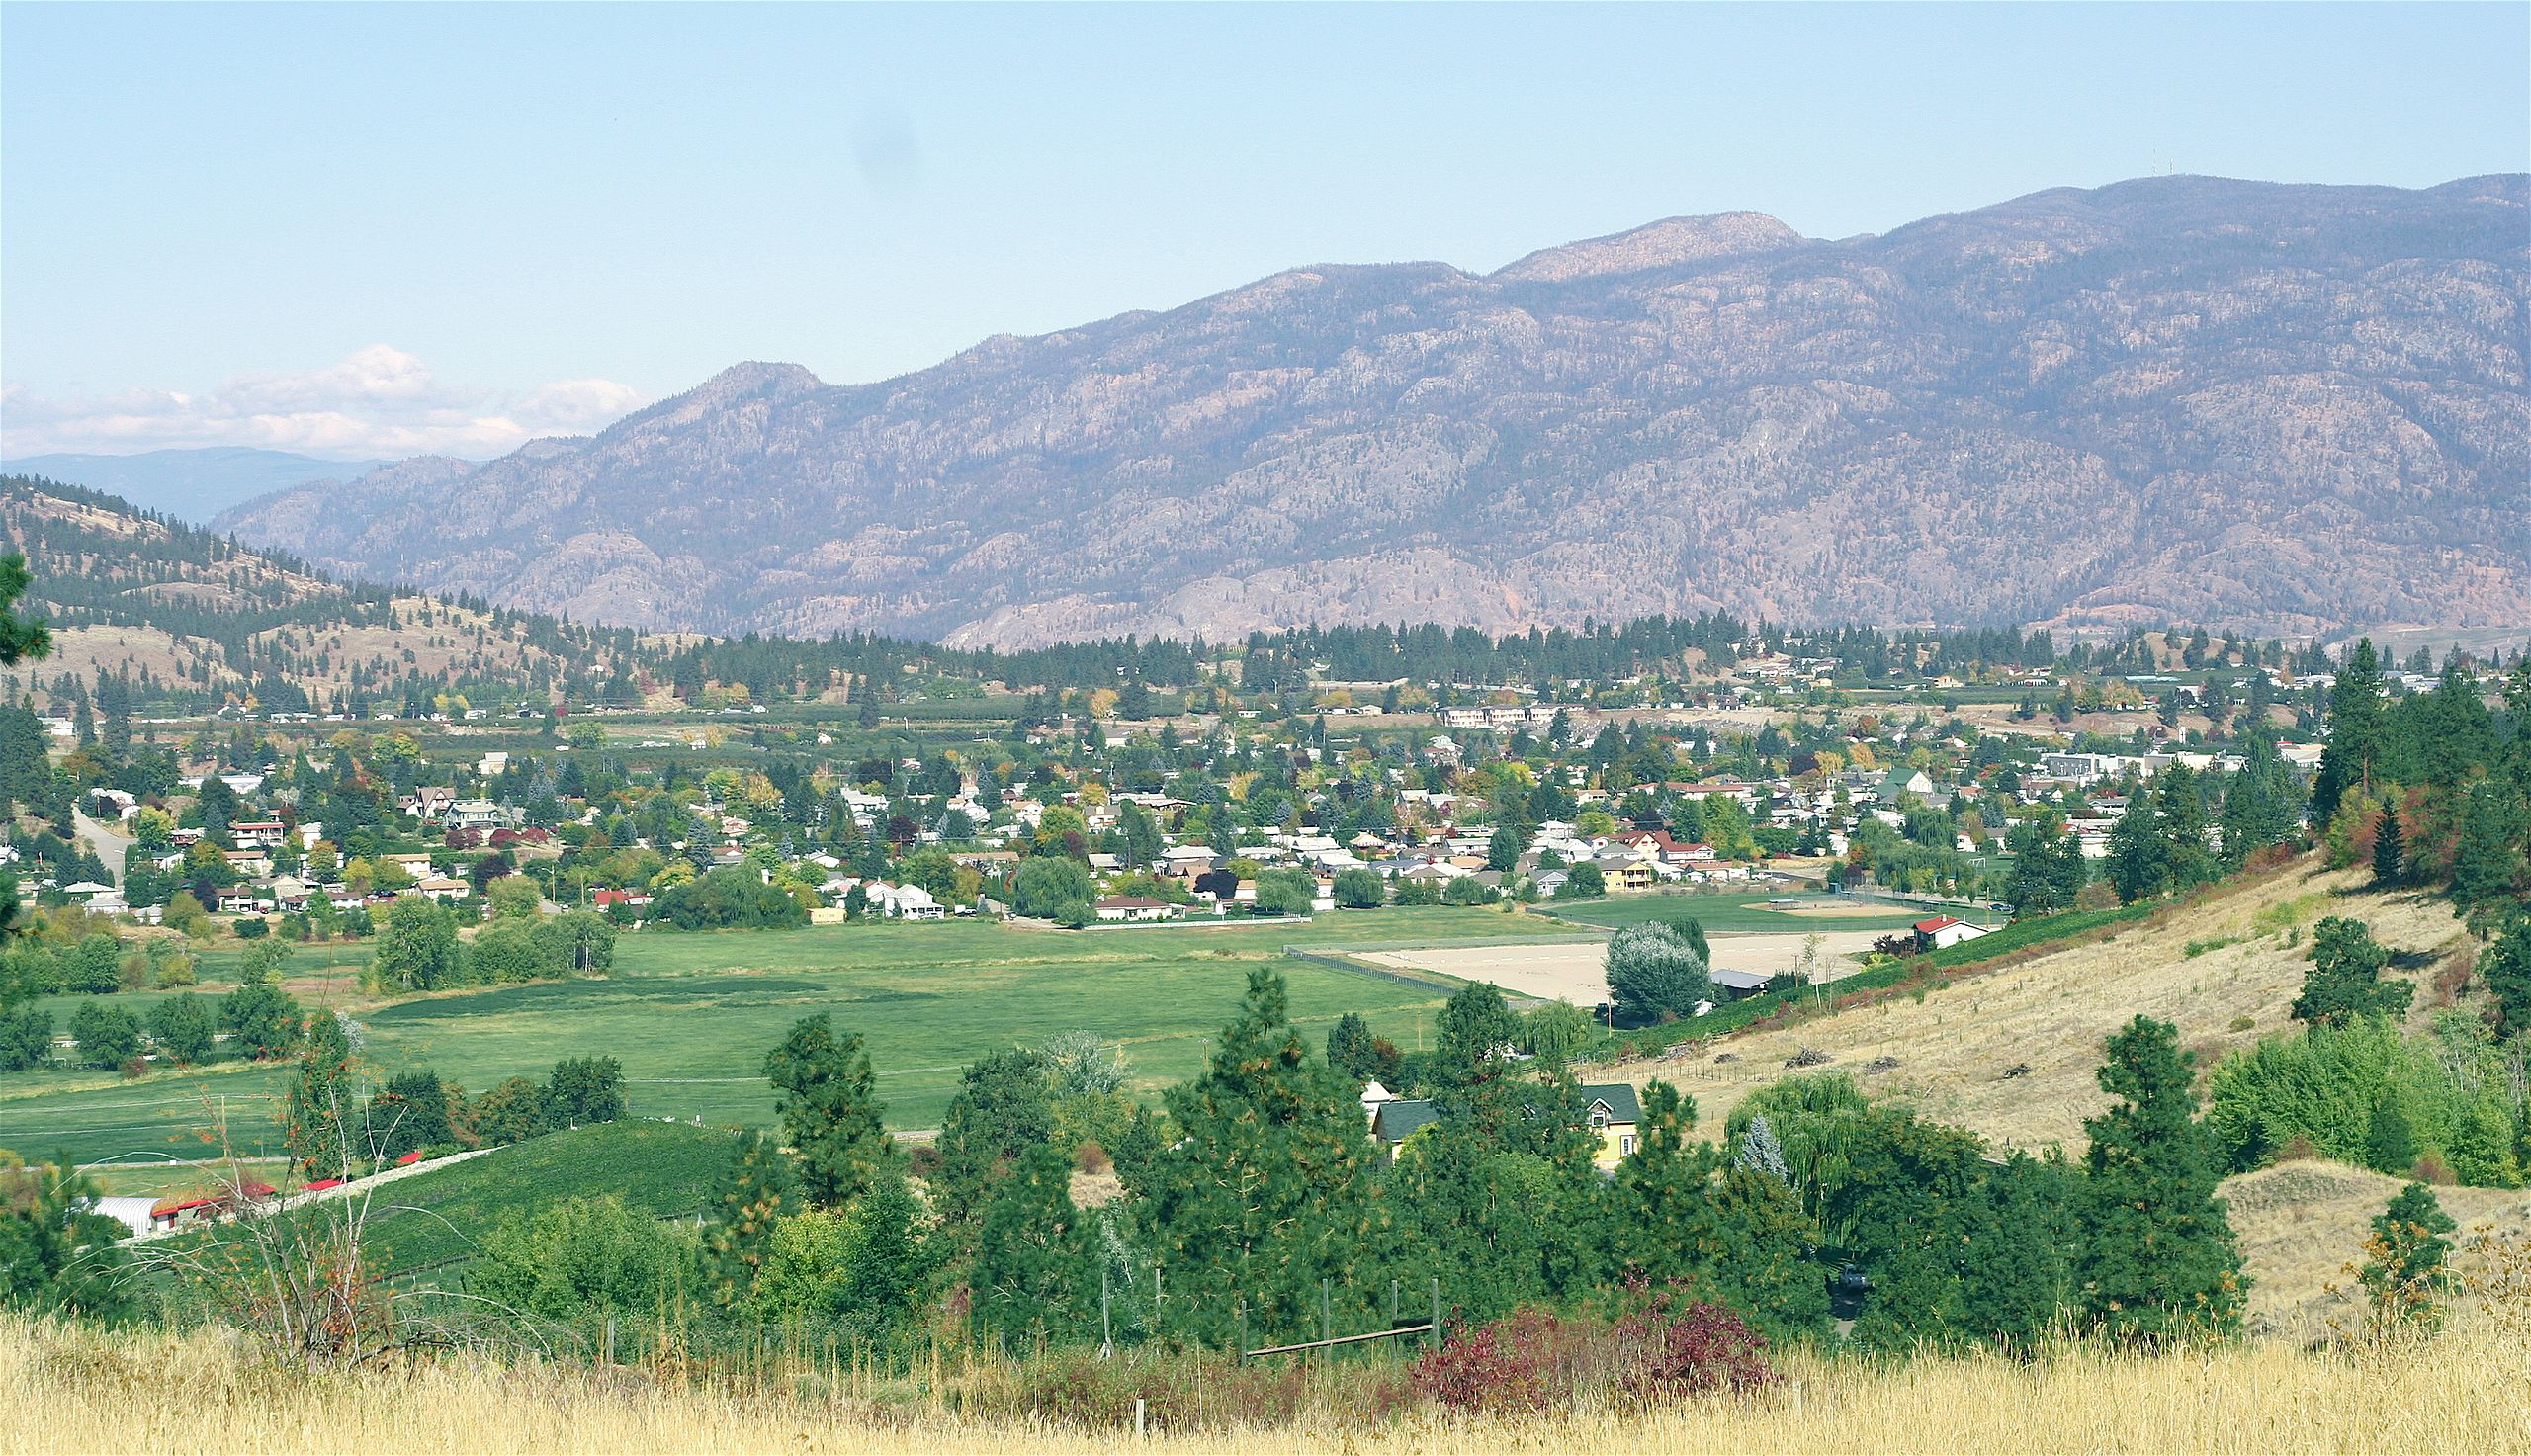 A view of Summerland